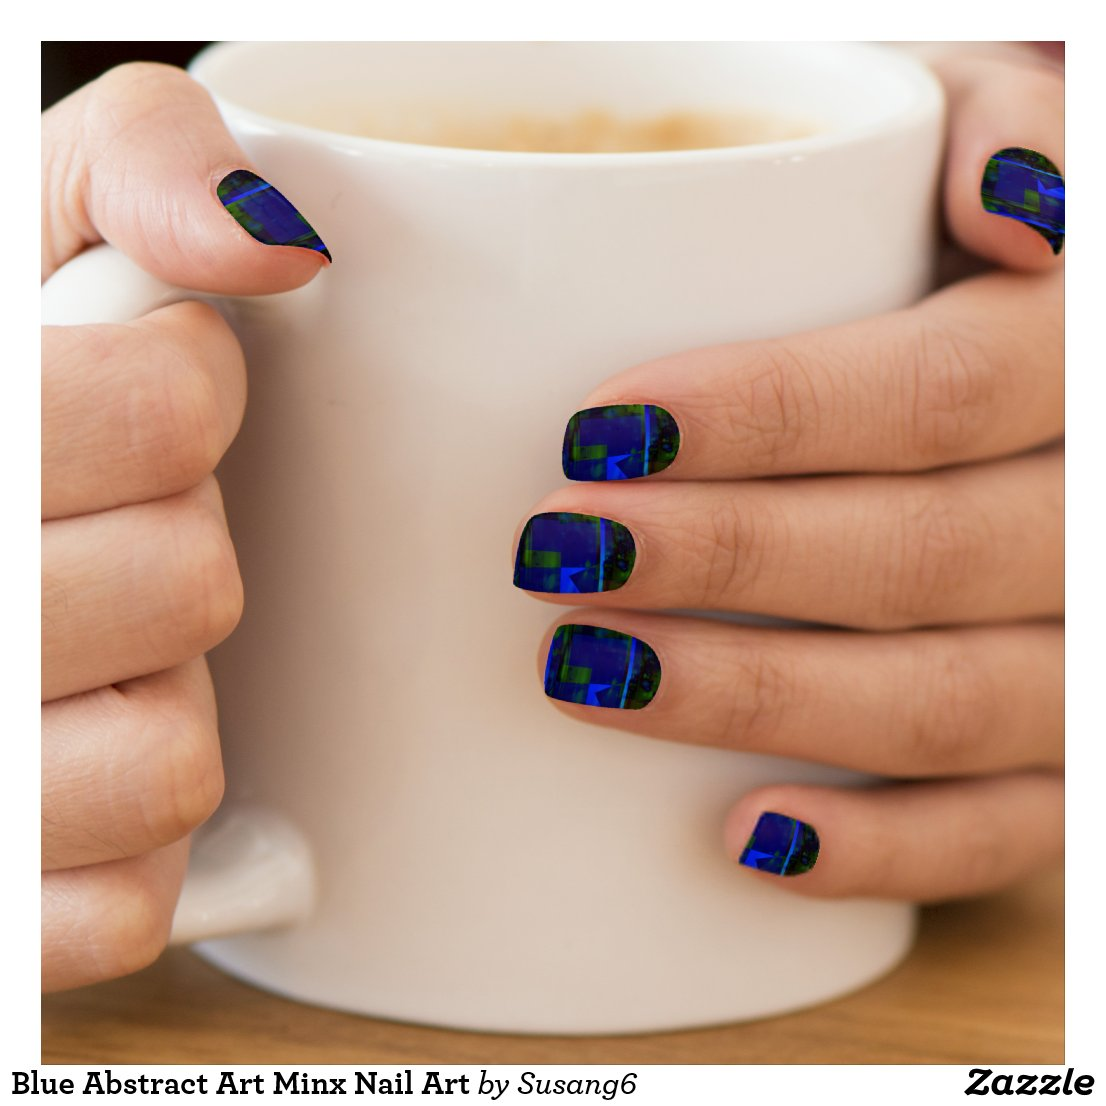 Blue Abstract Art Minx Nail Art